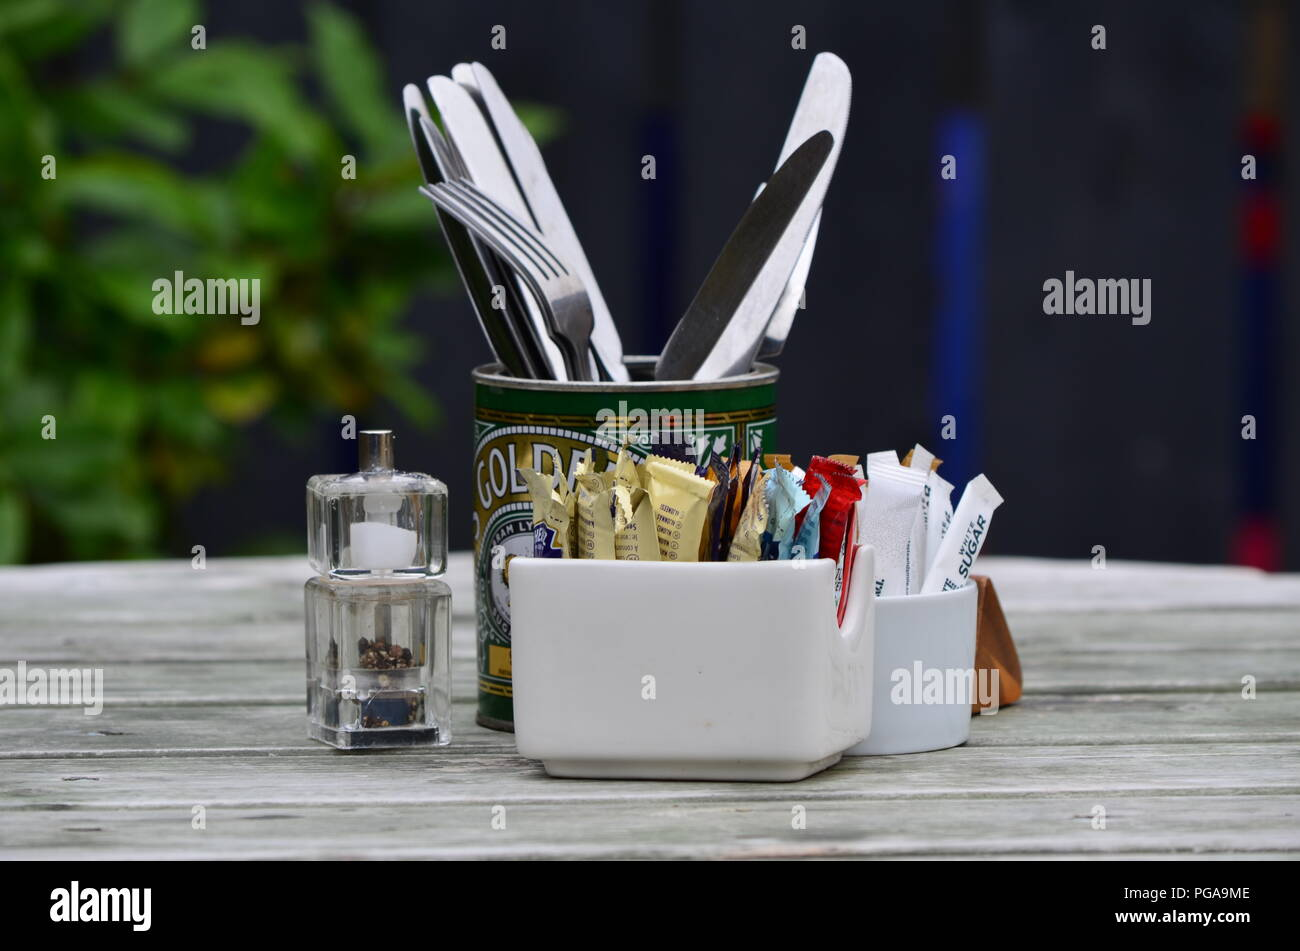 Collection of condiments, cutlery on sun-bleached picnic table - Stock Image